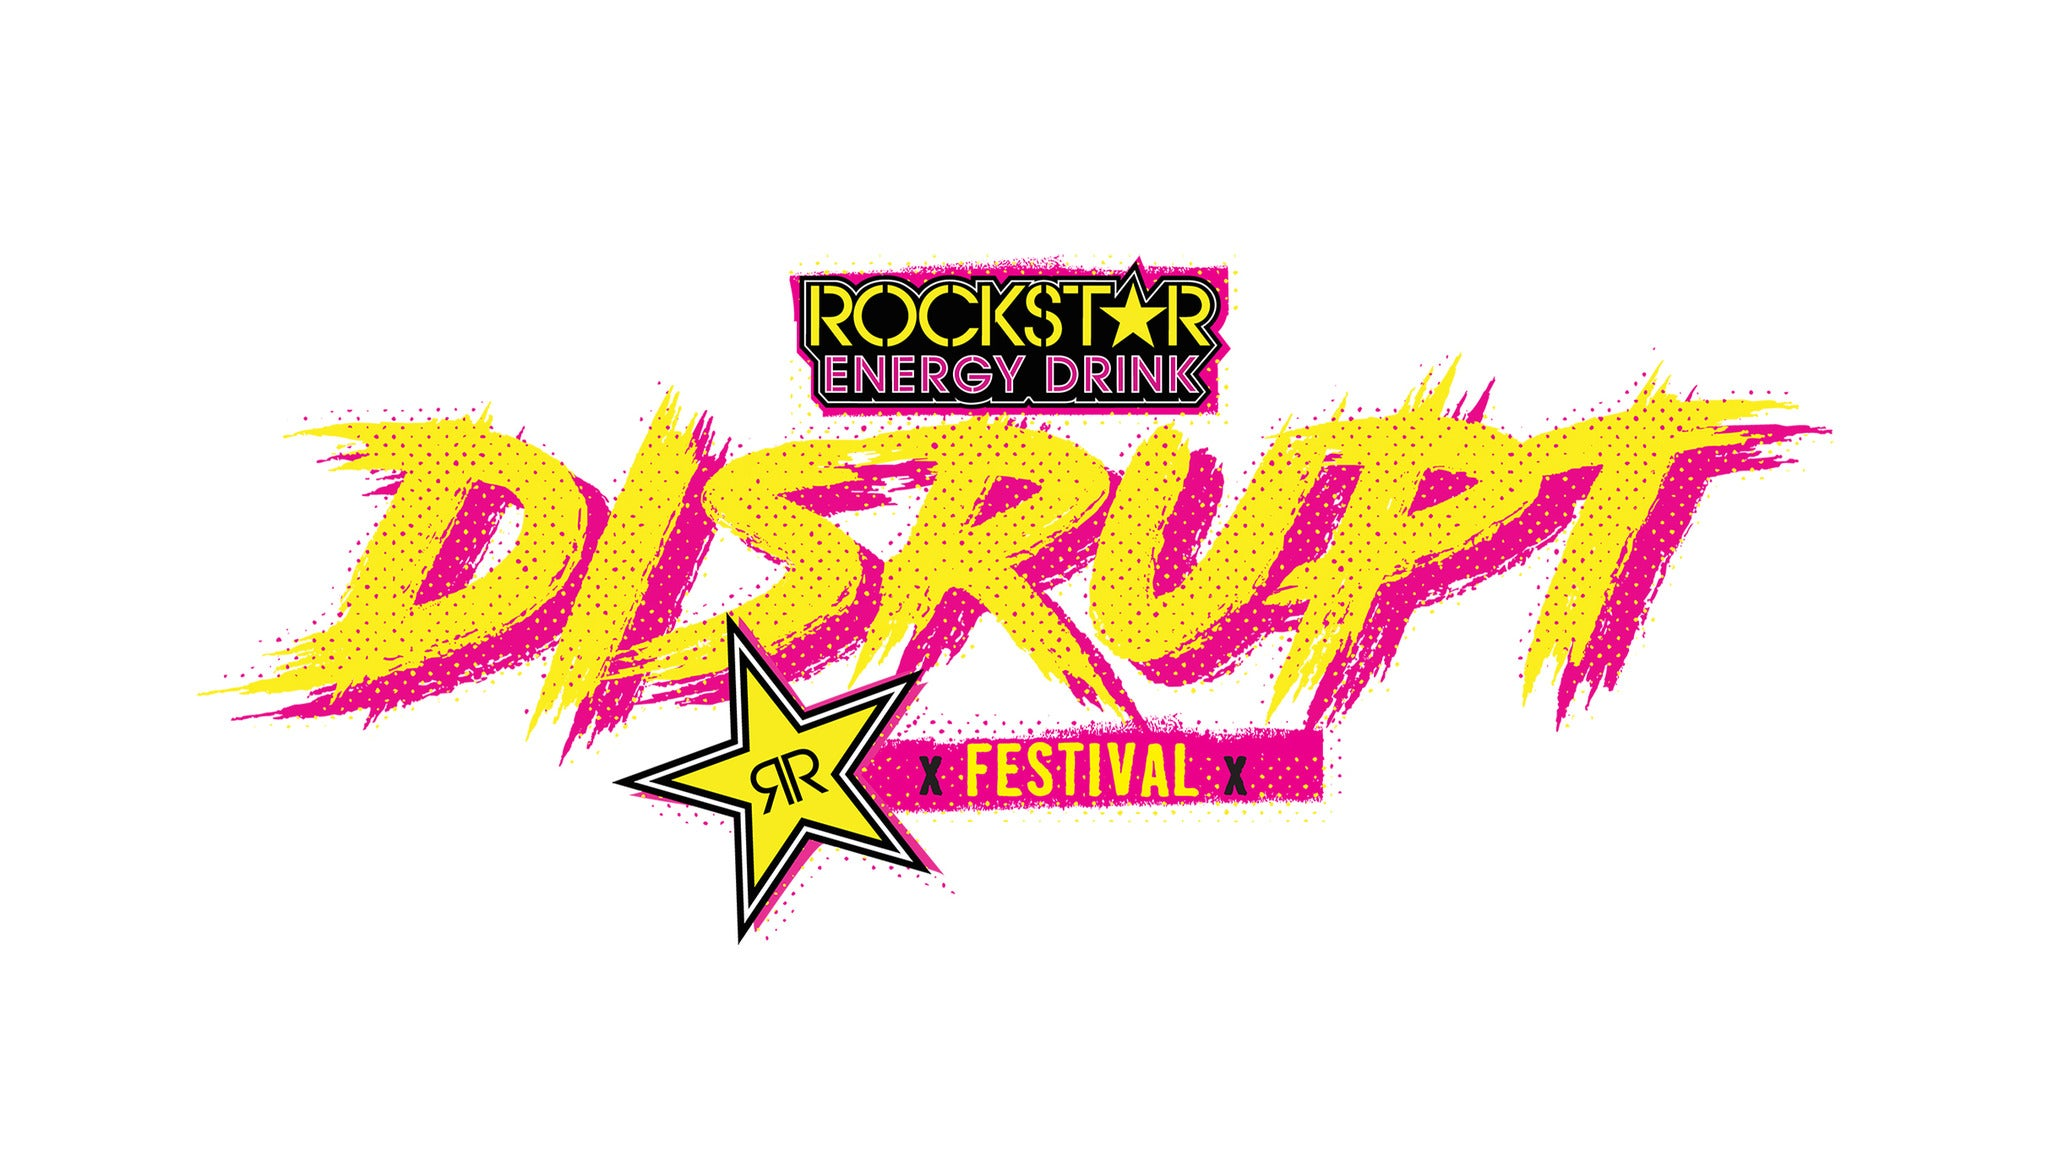 Rockstar Energy DISRUPT Festival: The Used, Thrice & more